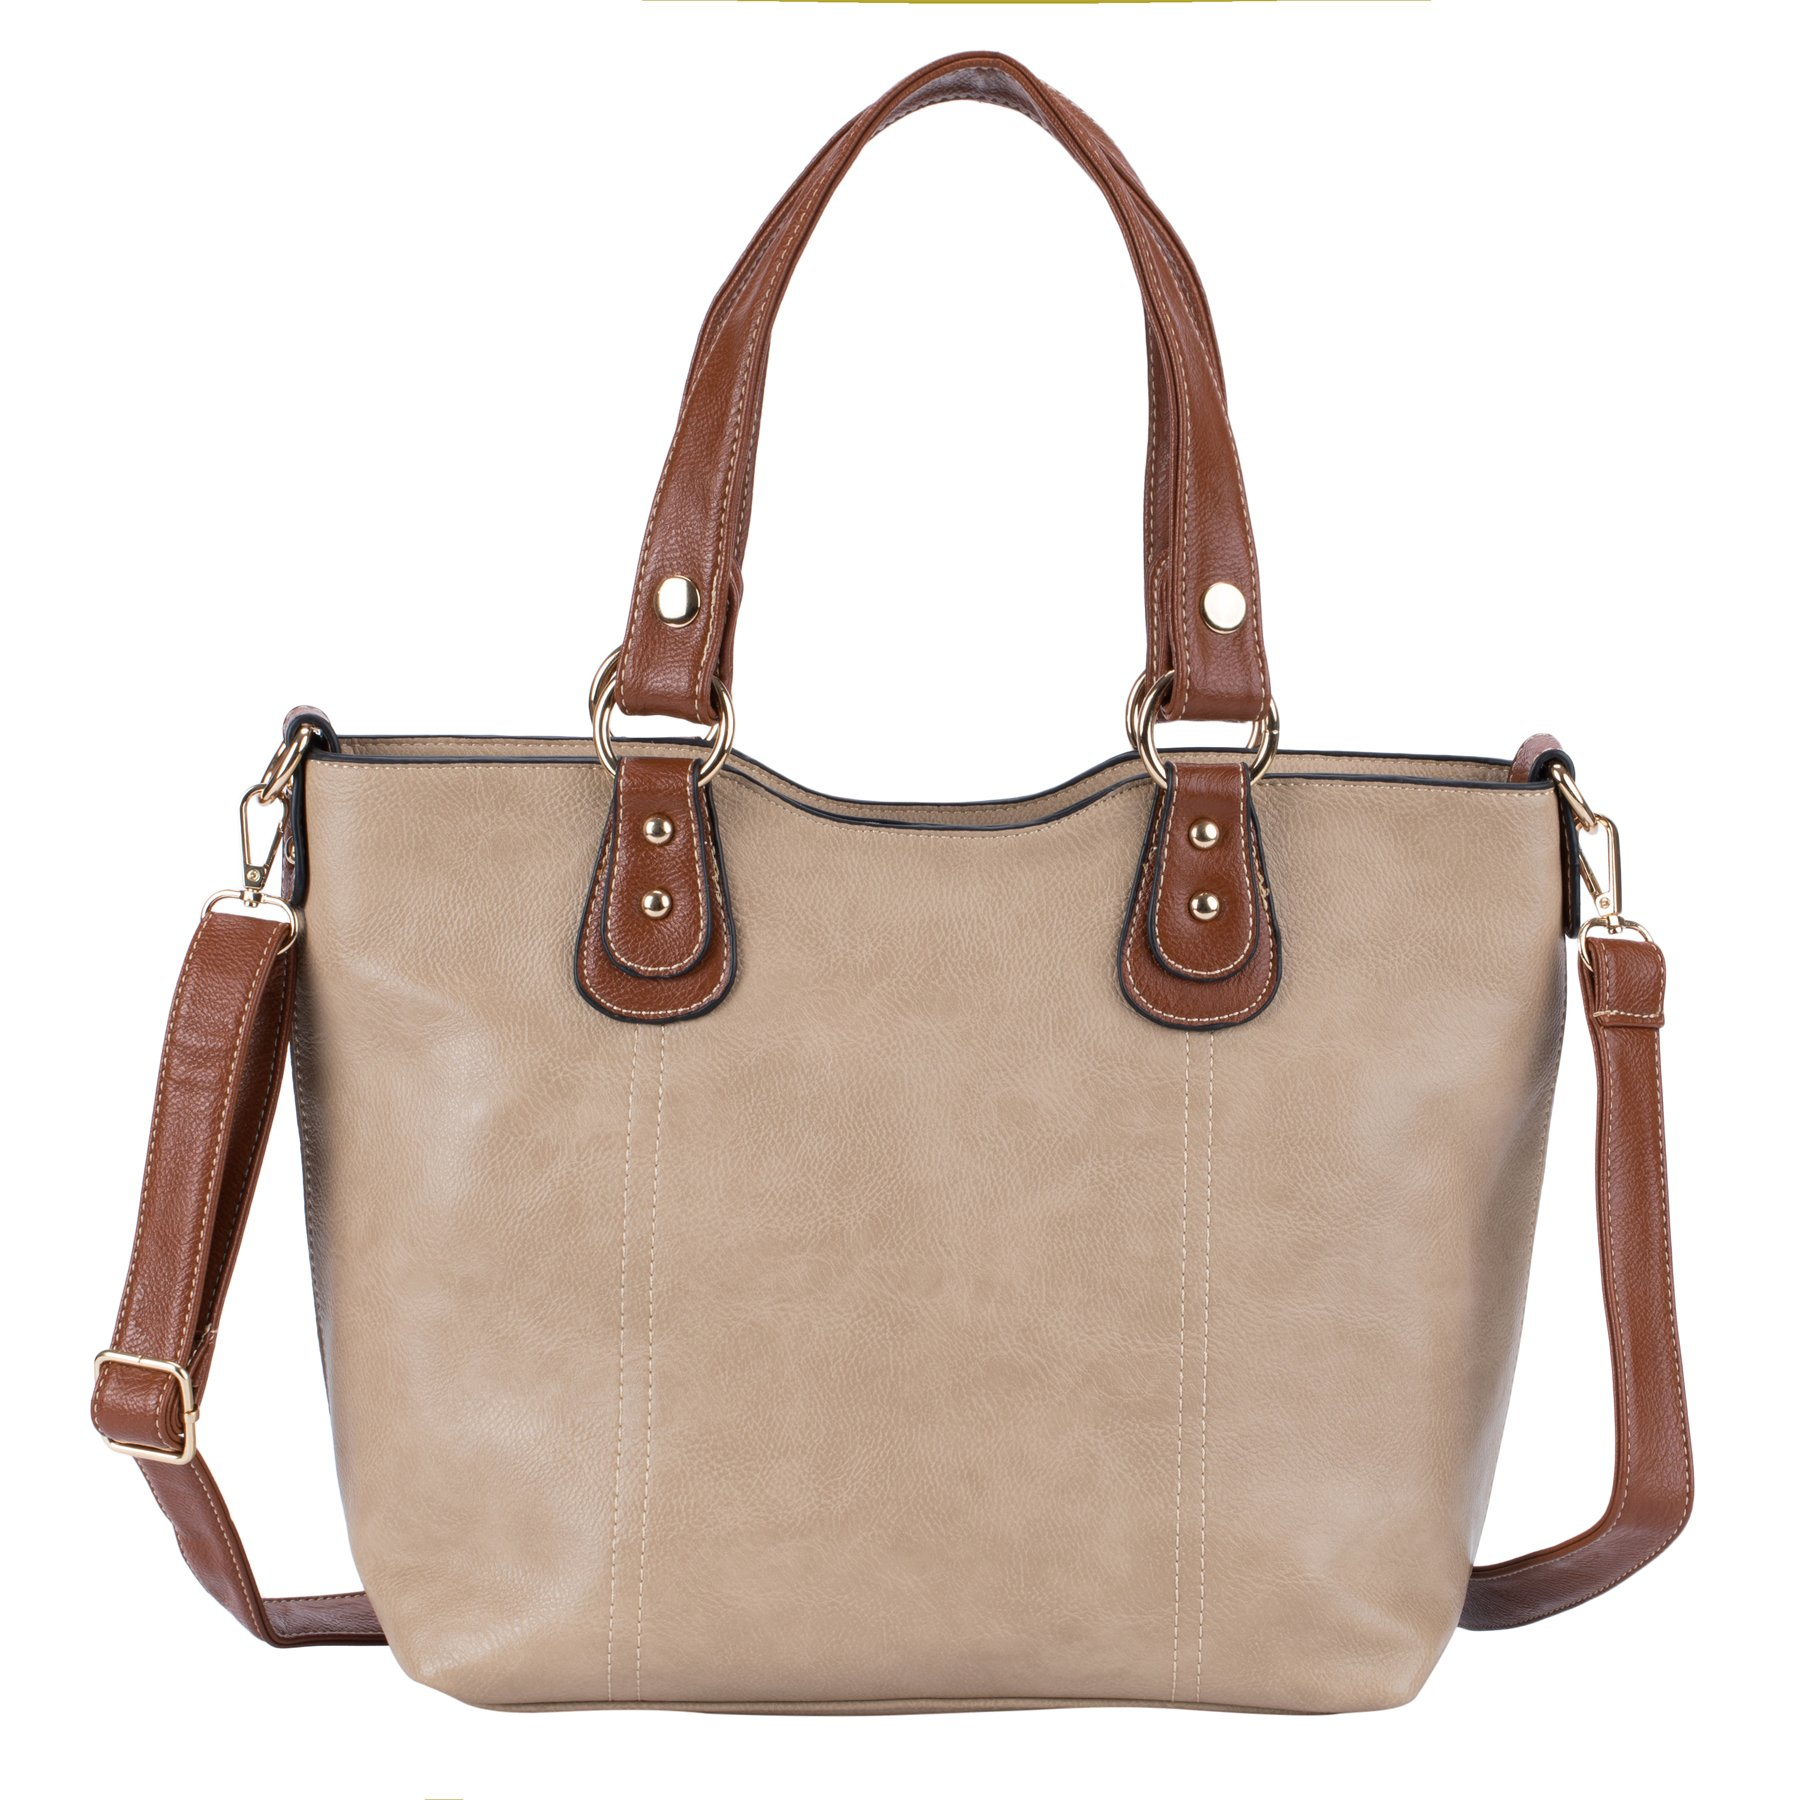 Tote Shoulder Handbags for Women Top Handle Shoulder Bags PU Leather Tote Purse by JolieLey Galanti (beige)